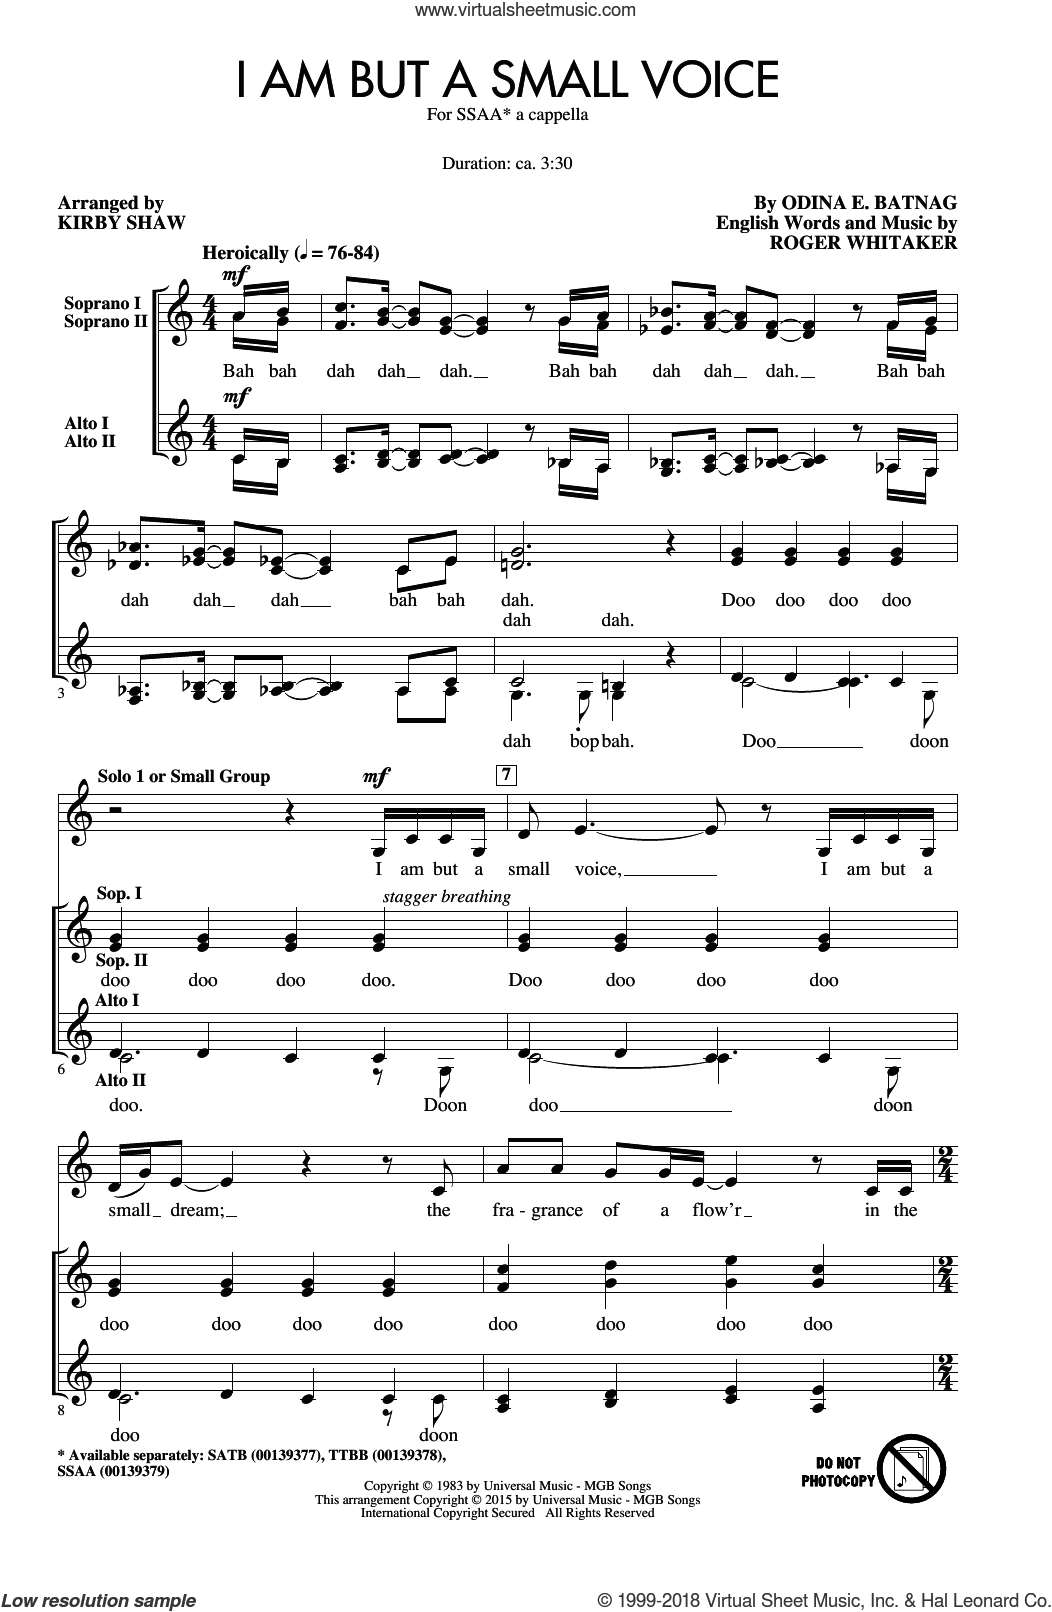 I Am But A Small Voice sheet music for choir (SSA: soprano, alto) by Kirby Shaw, Odina E. Batnag and Roger Whitaker, intermediate skill level